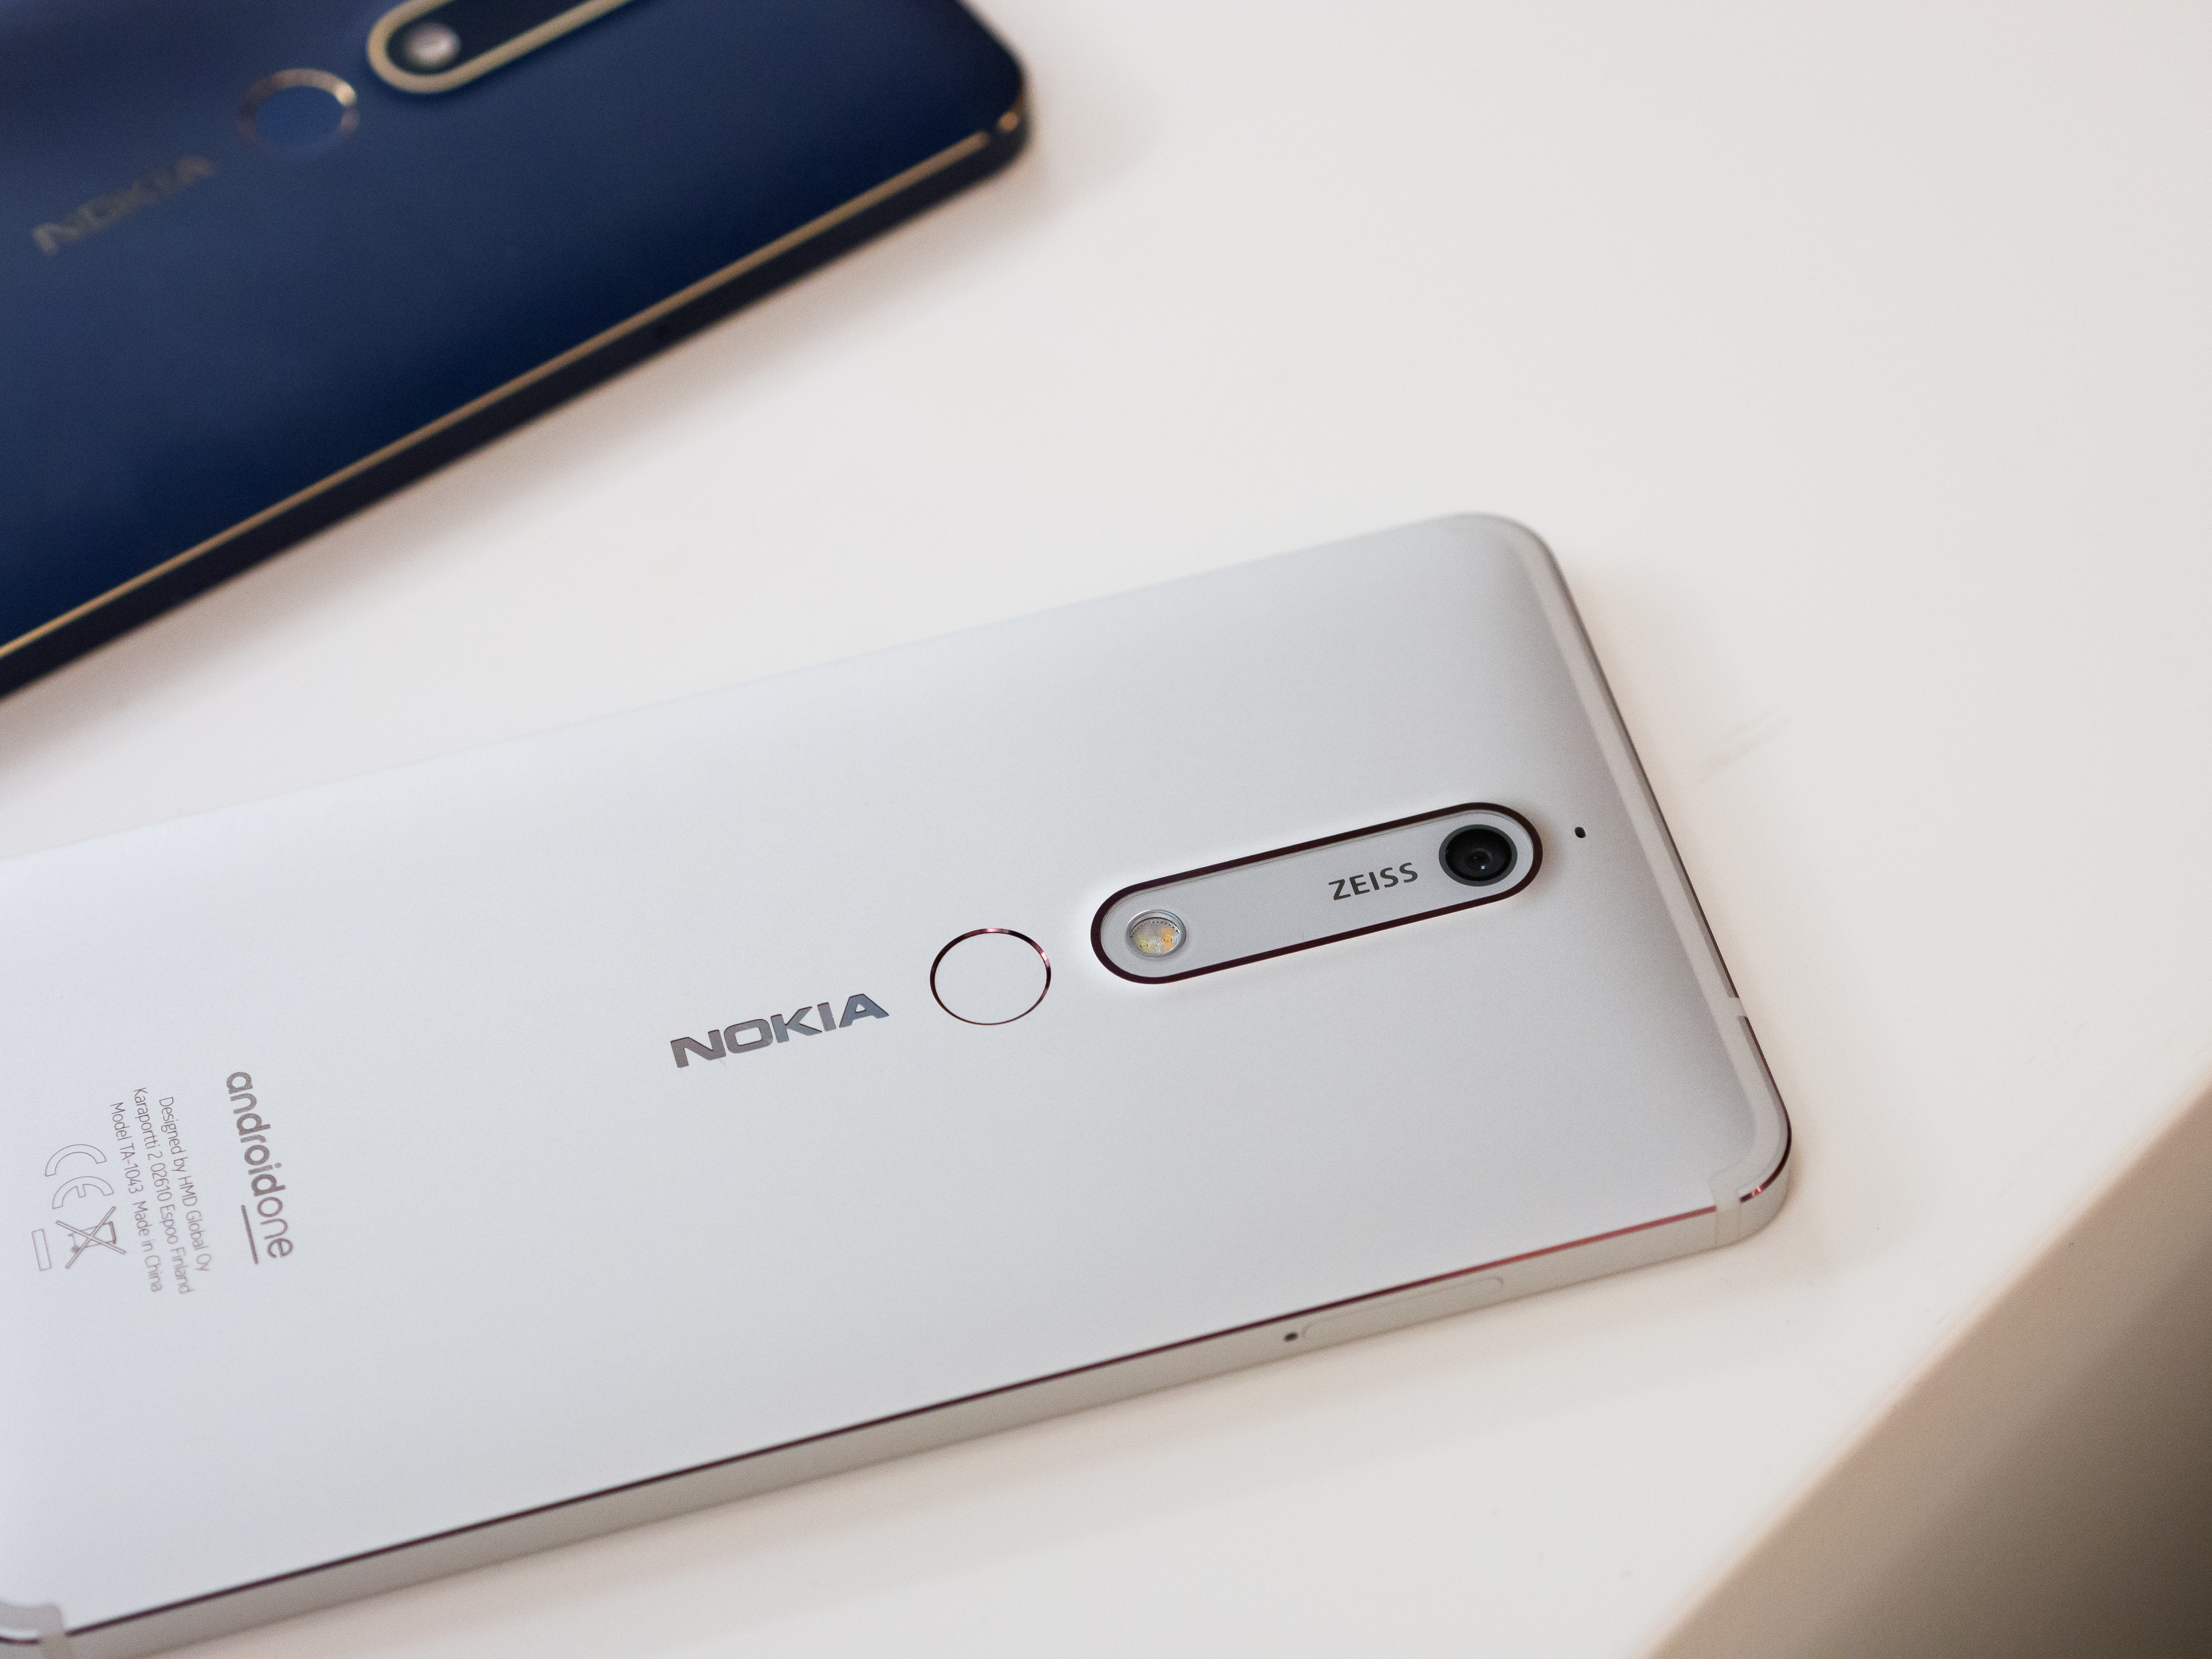 Nokia Launches Four Smartphones At Mwc The 1 6 2018 7 Plus And 8 Sirocco